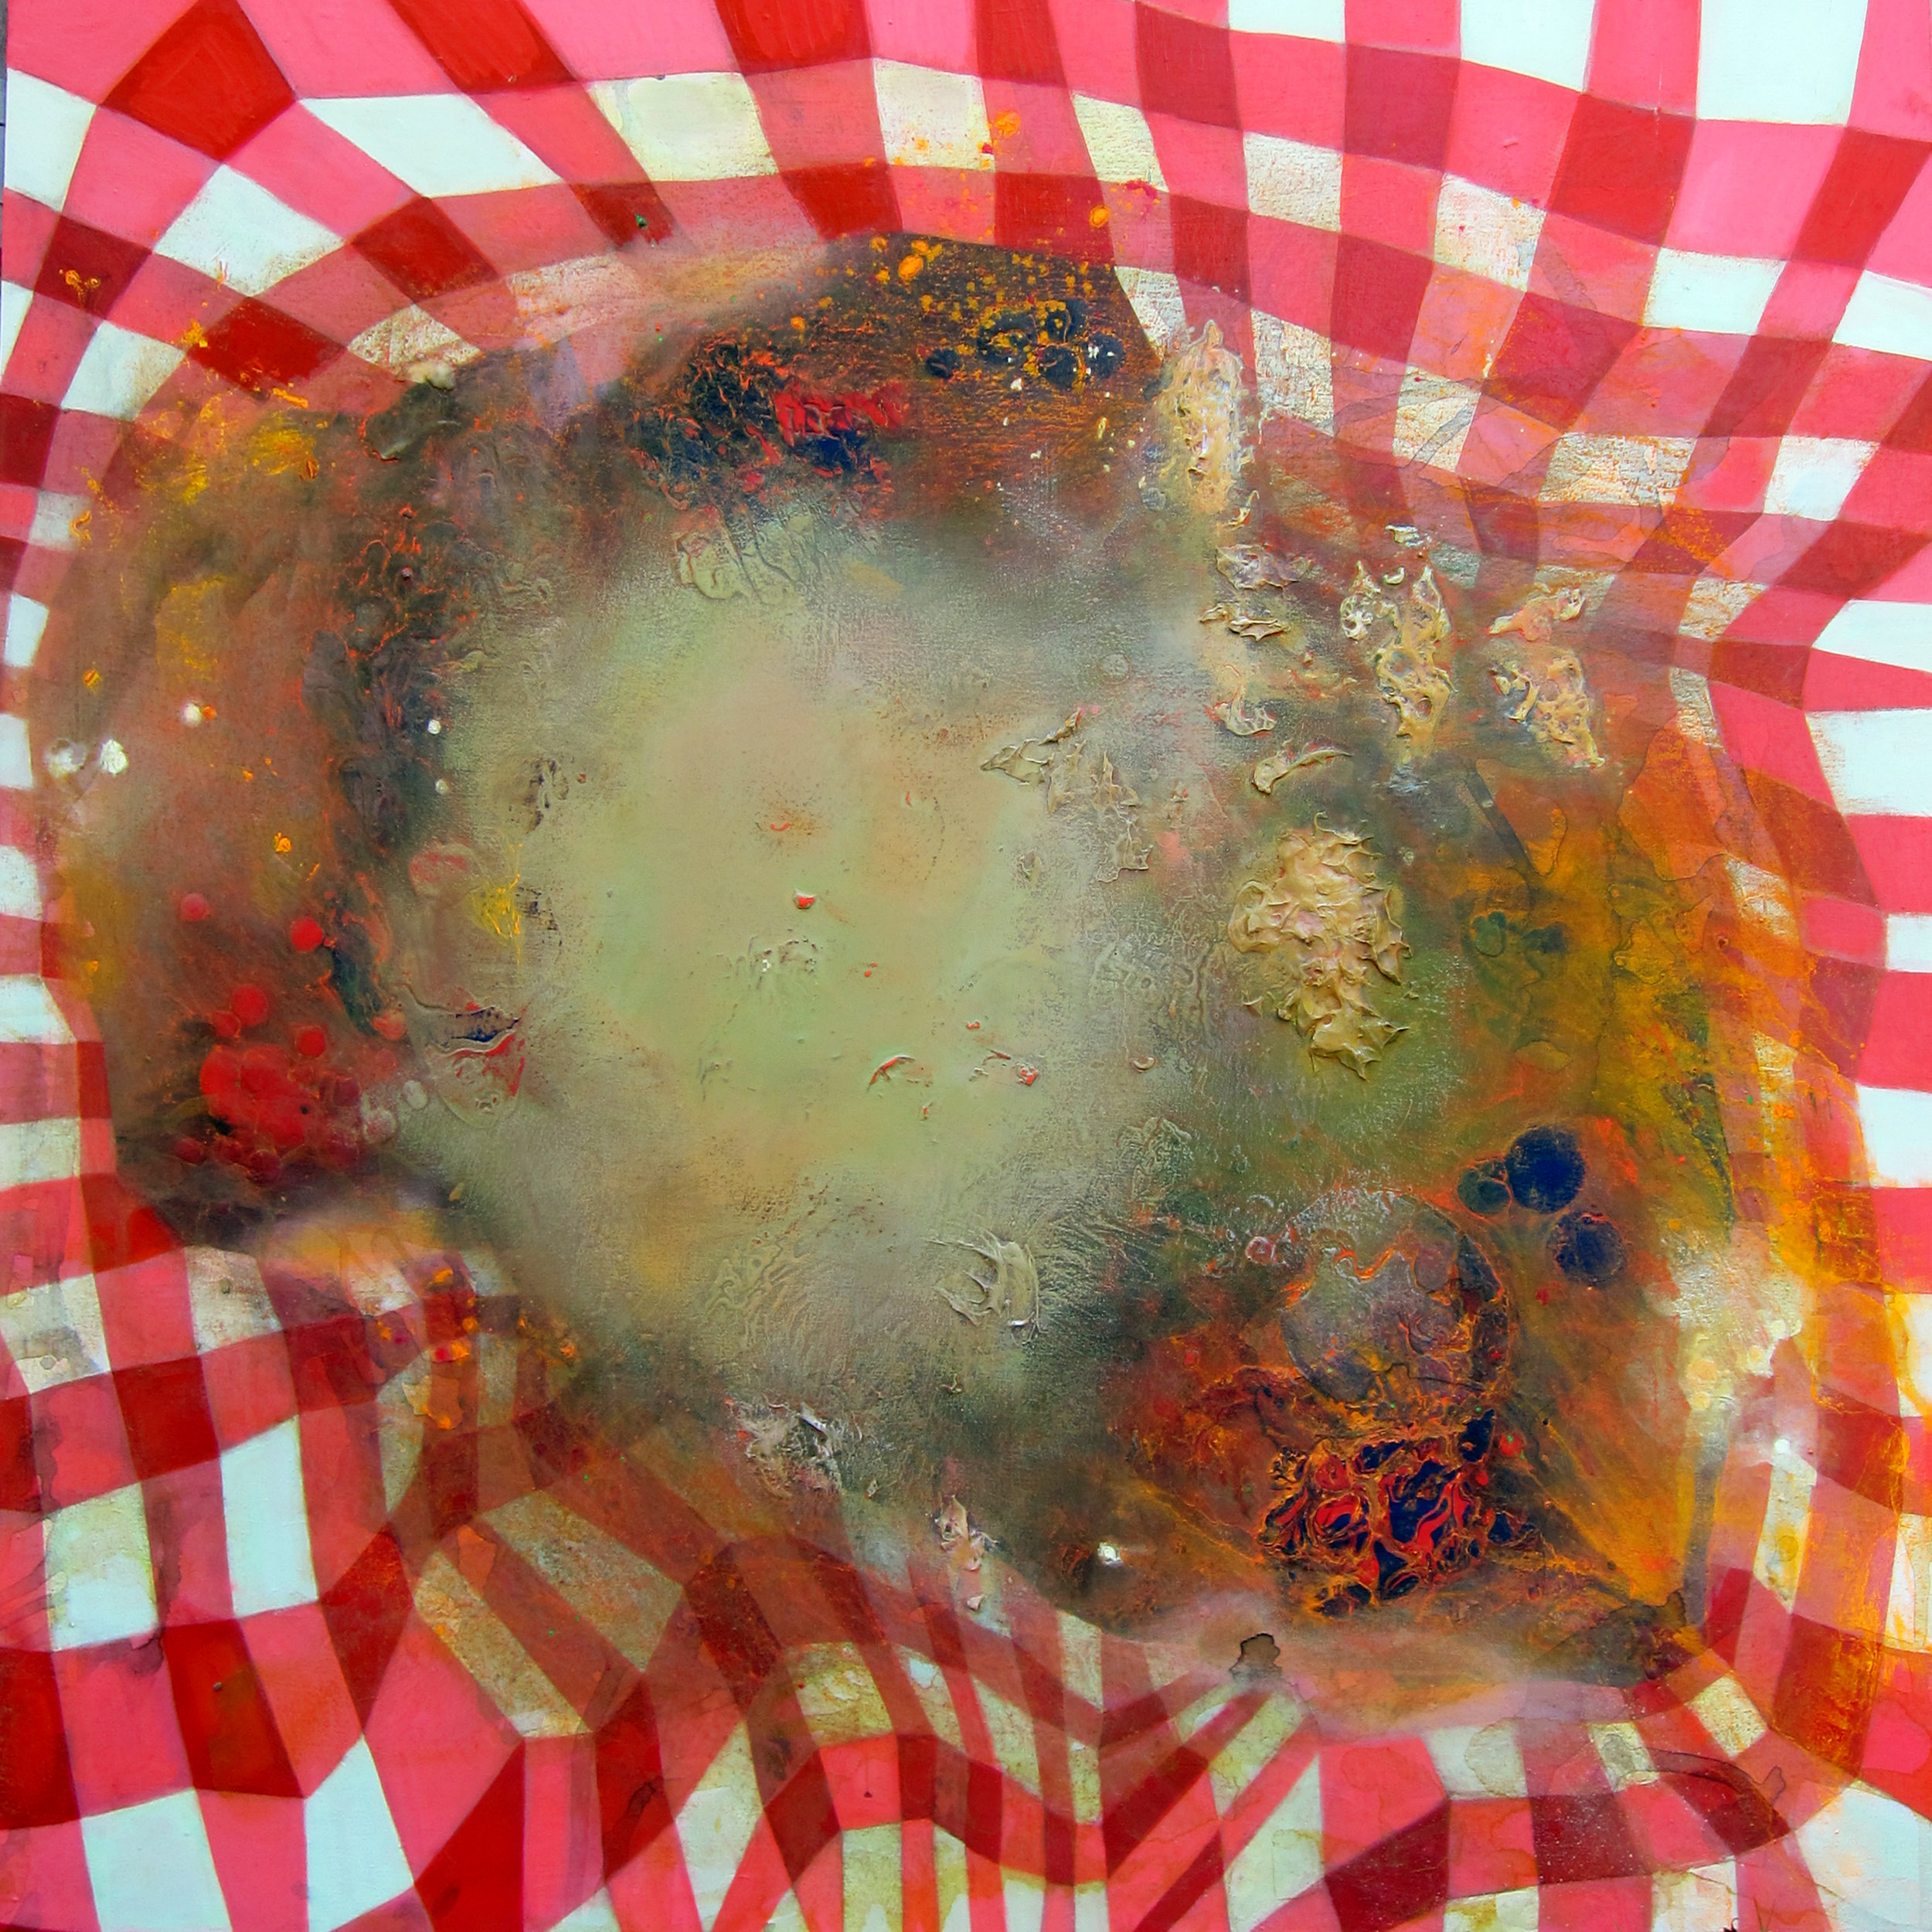 Picnic , 2013, acrylic on canvas, 48 x 48 inches. Jennifer Coates.